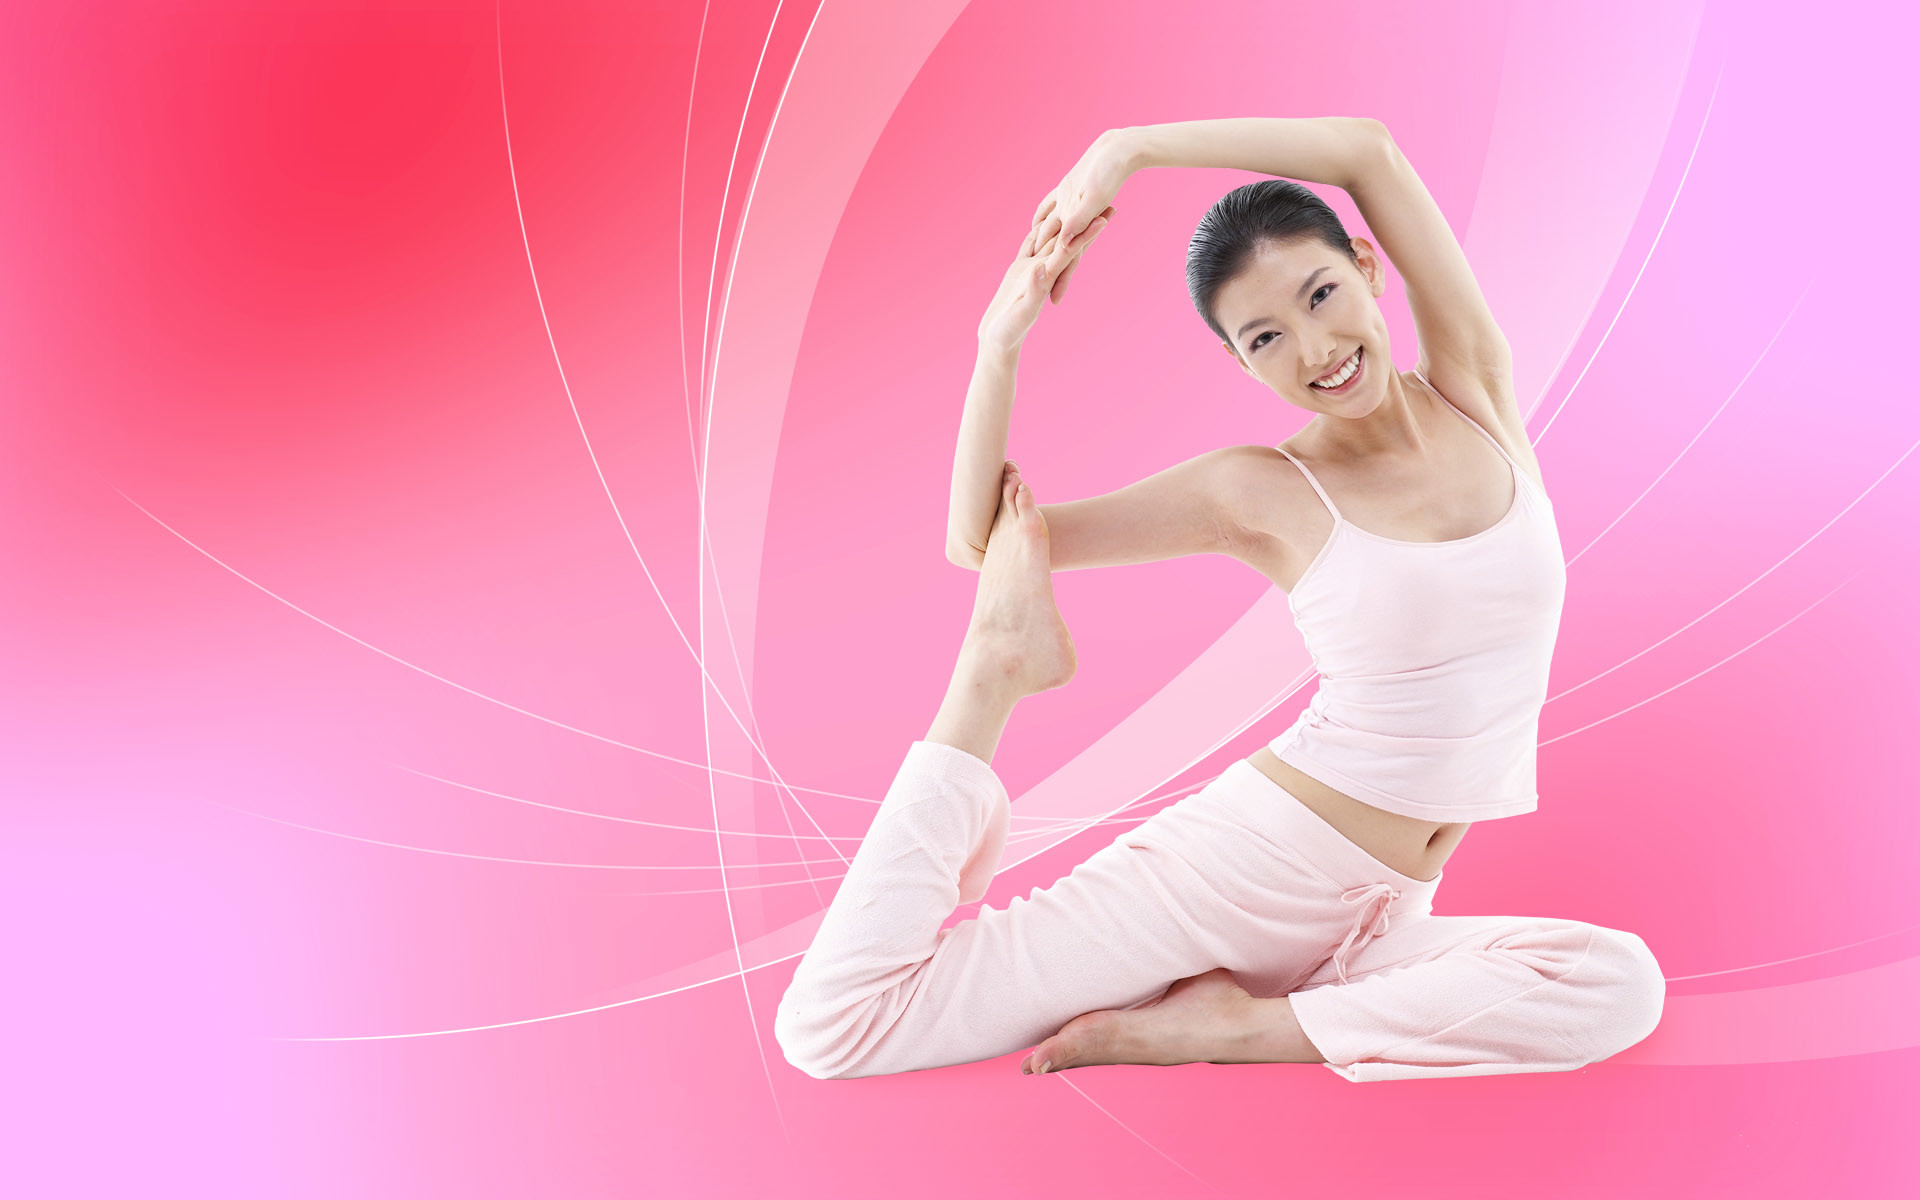 1920x1200 Download Free Yoga Wallpapers HD Pictures